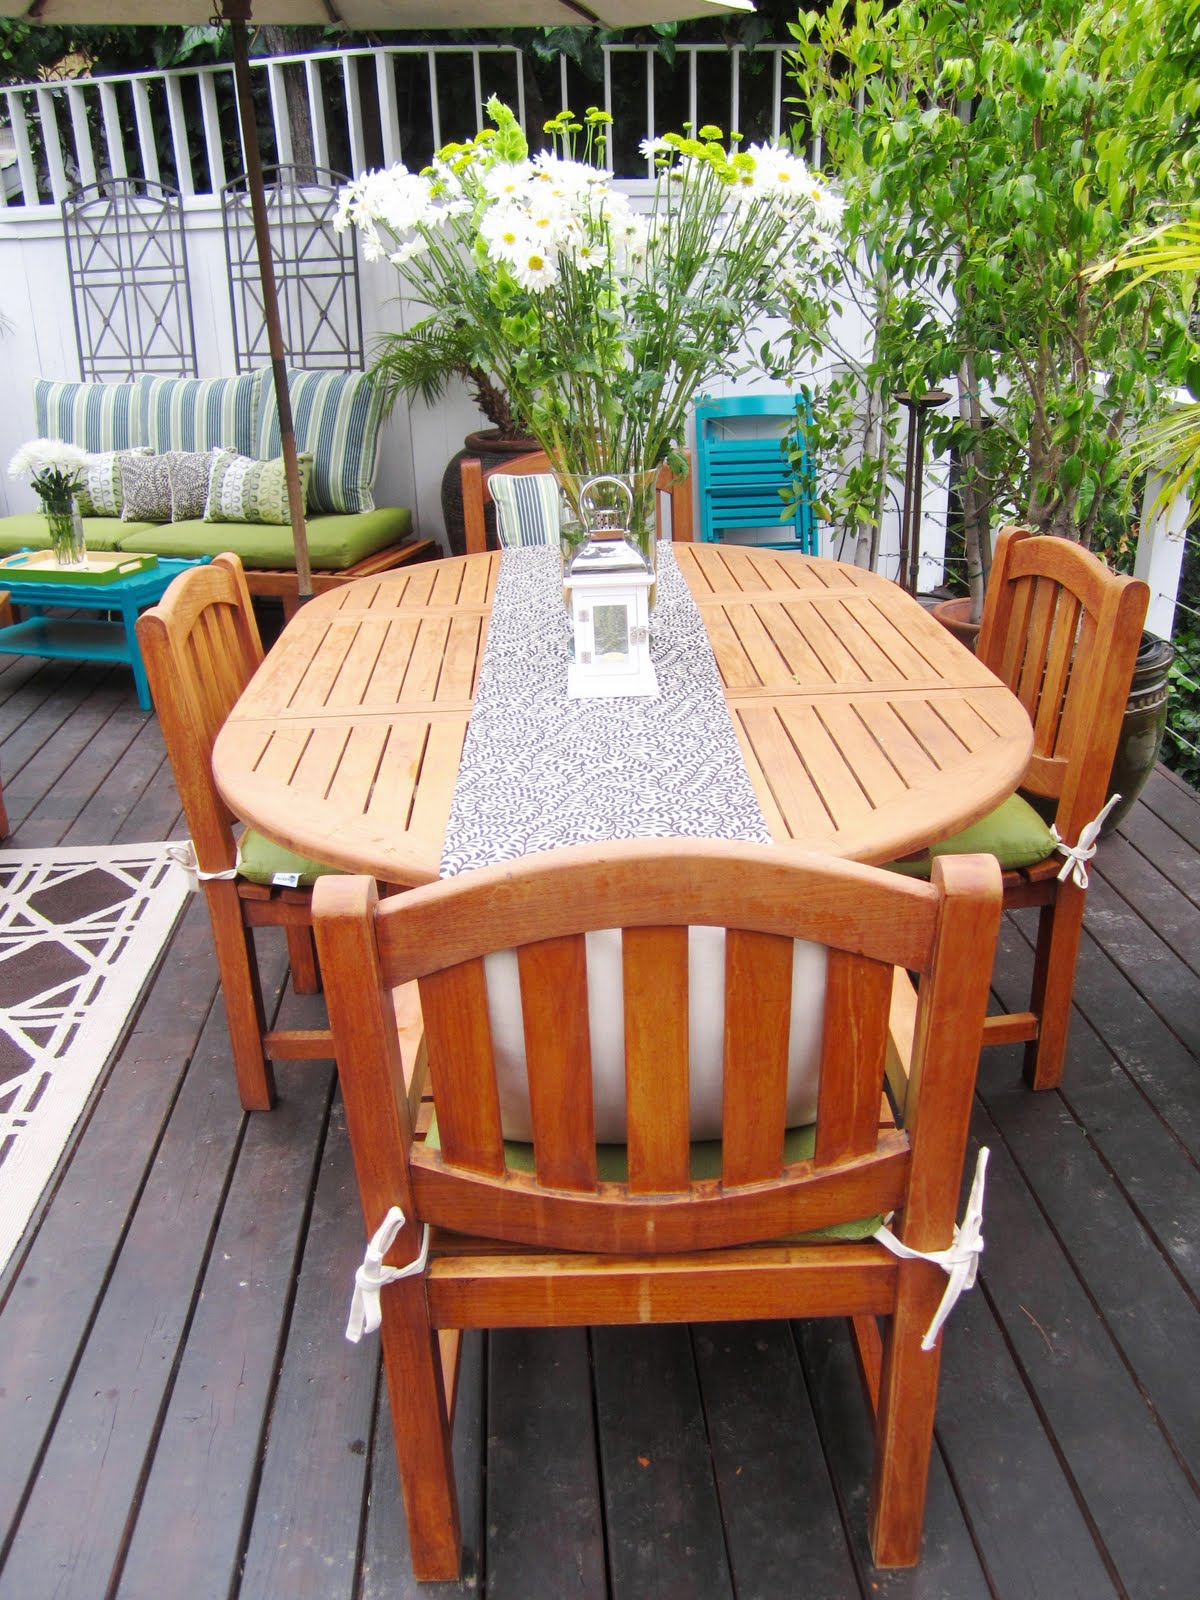 My Hollywood Hills Deck Makeover Part 2 The Resource